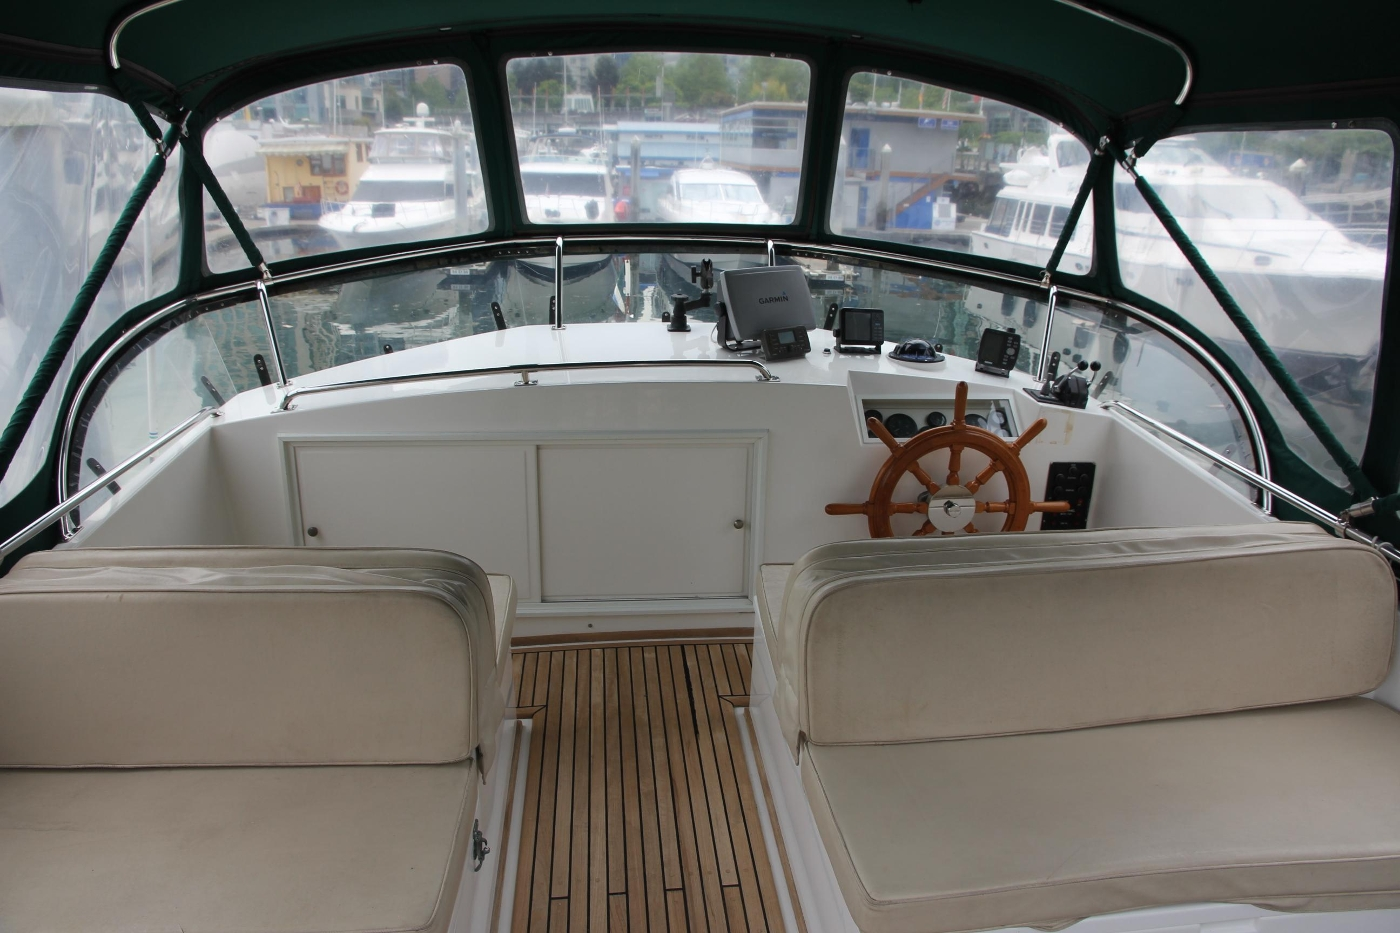 2001 Grand Banks 42 Classic, Fore and Aft Seating